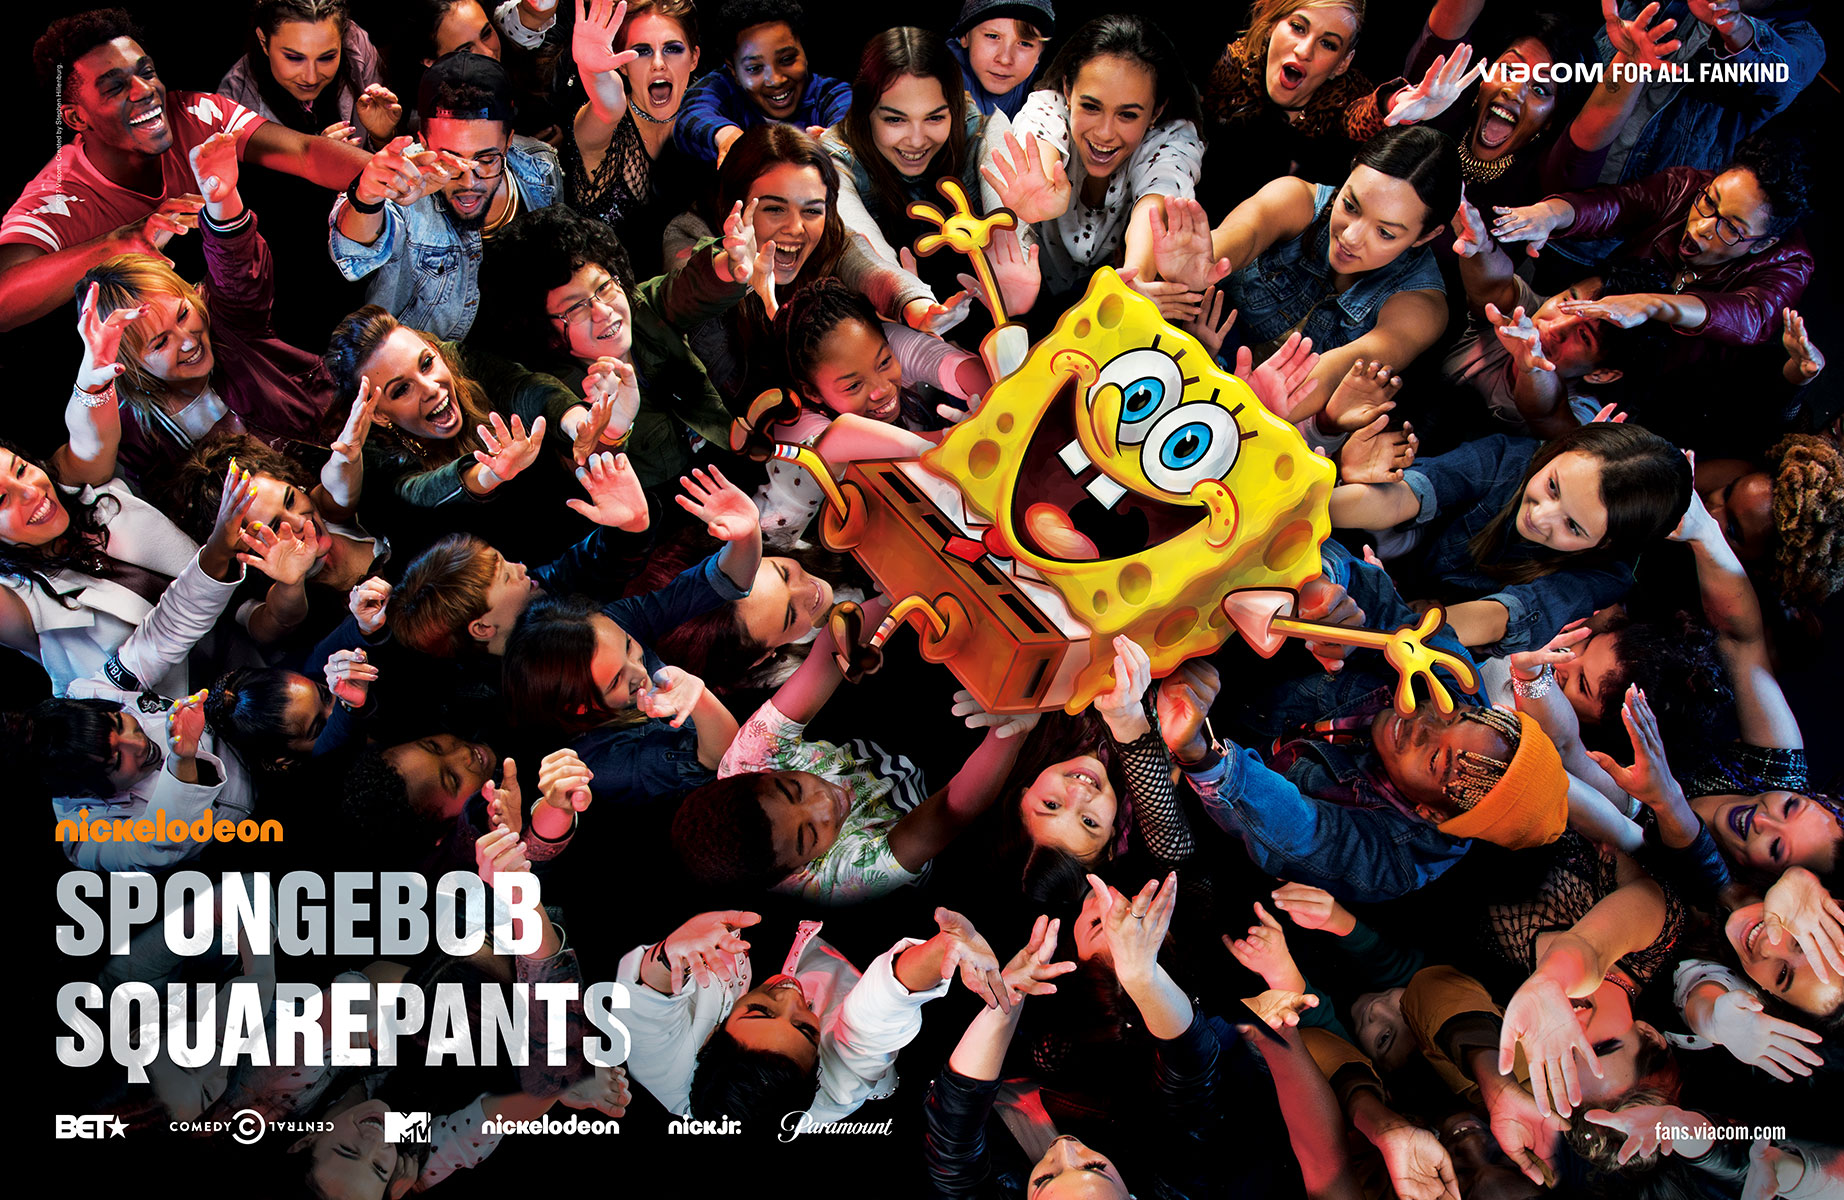 Variety_SPD_Nick-Spongebob_CROWD_V2